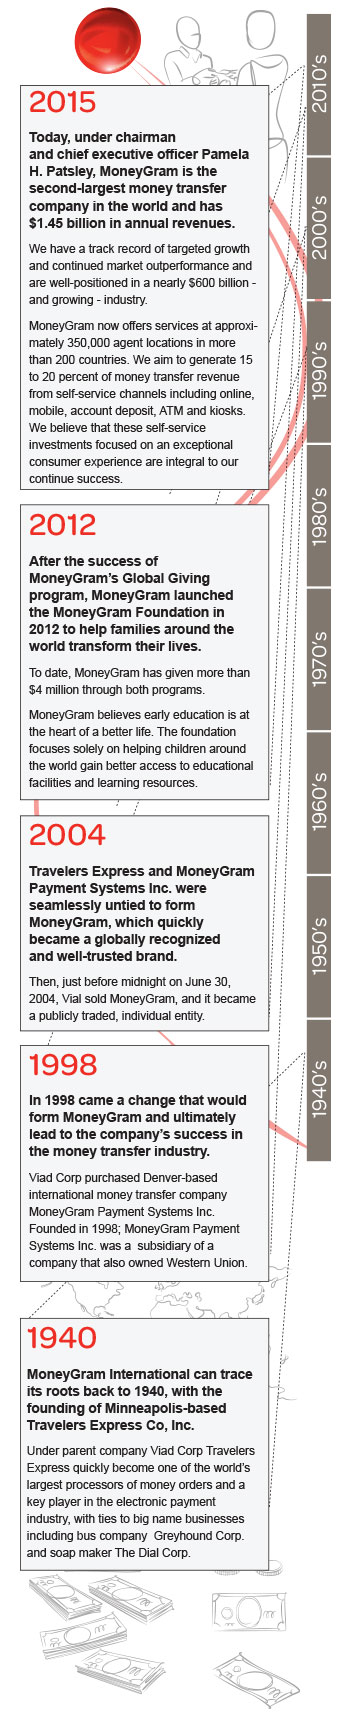 MoneyGram is the second-largest money transfer company in the world and has $1.5 billion in annual revenues. We have a track record of targeted growth and are well-positioned in a nearly $600 billion - and growing - industry. MoneyGram now offers services at approximately 350,000 agent locations in more than 200 countries, and has an aggressive expansion plan that includes 15 to 20 percent of money transfer revenue from self-service channels including online, mobile, account deposit, ATMs, and kiosks. We believe that self-service investments focused on an exceptional consumer experience are integral to our continued success.